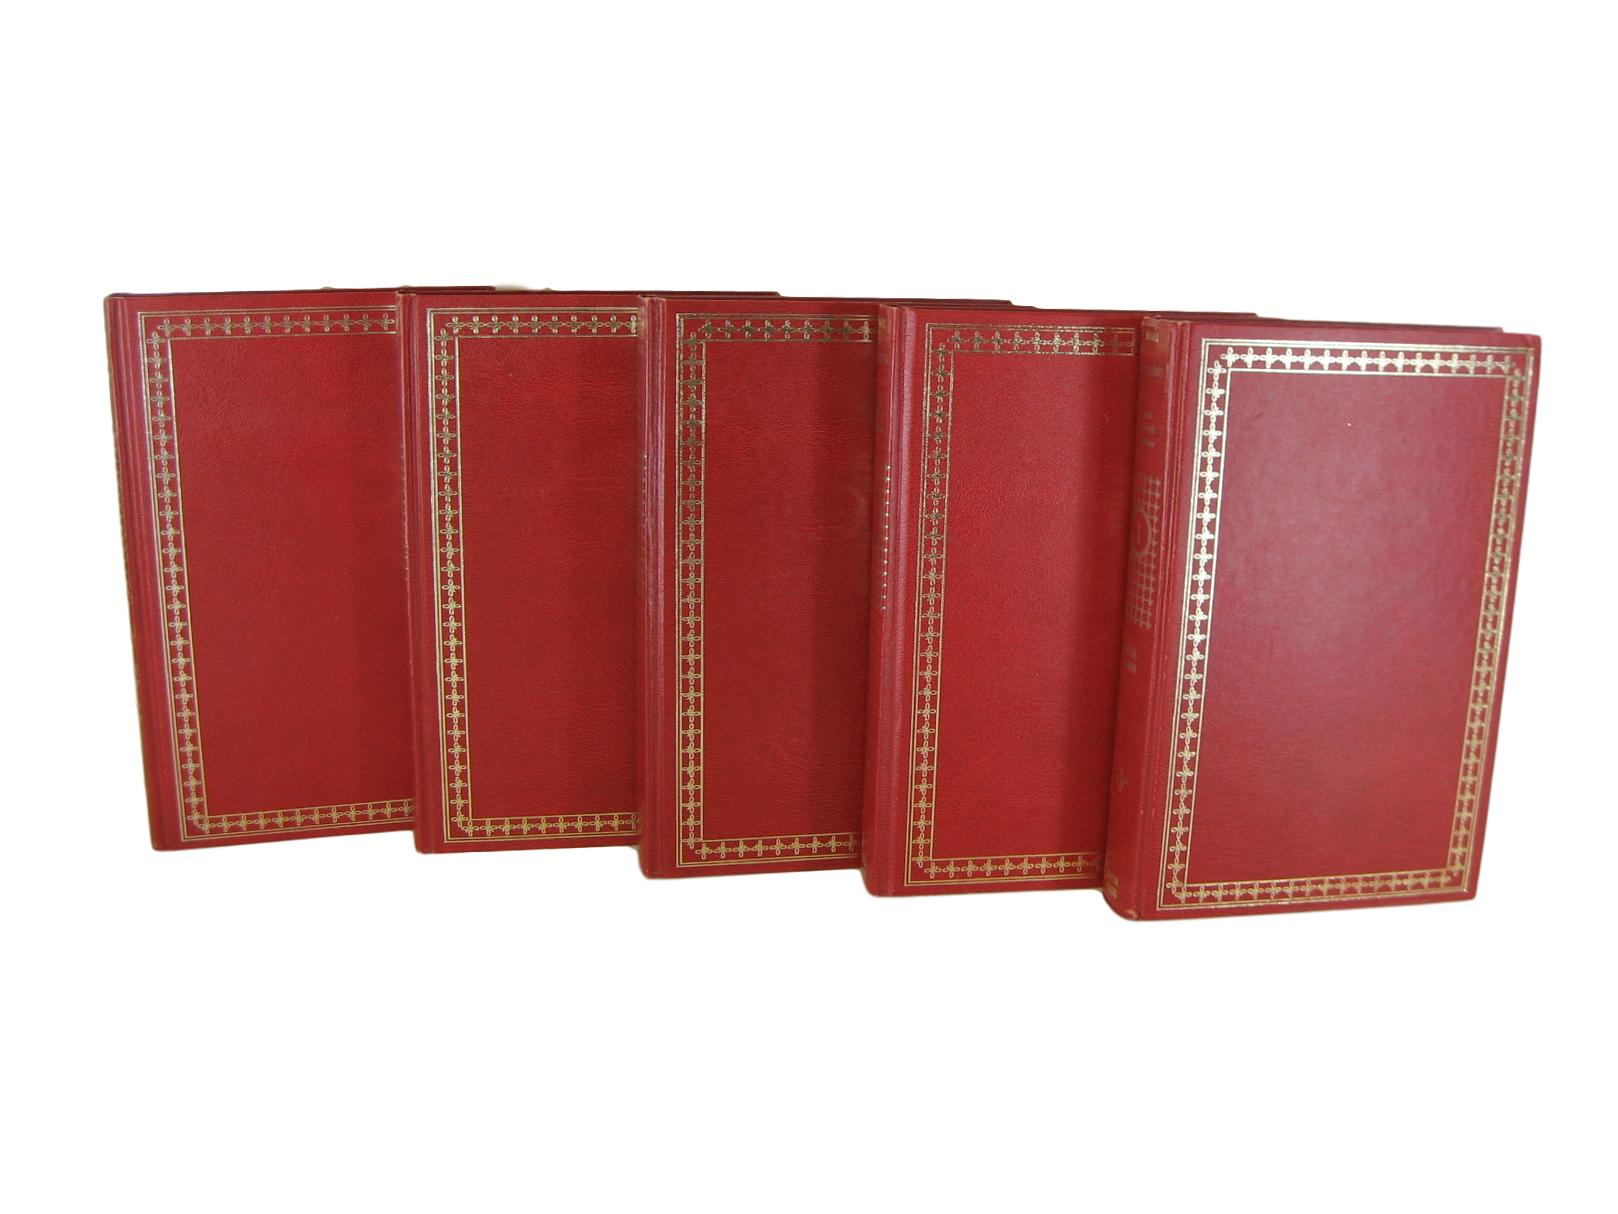 Red Decorative Books for Bookshelf Decor, S/5 - Decades of Vintage